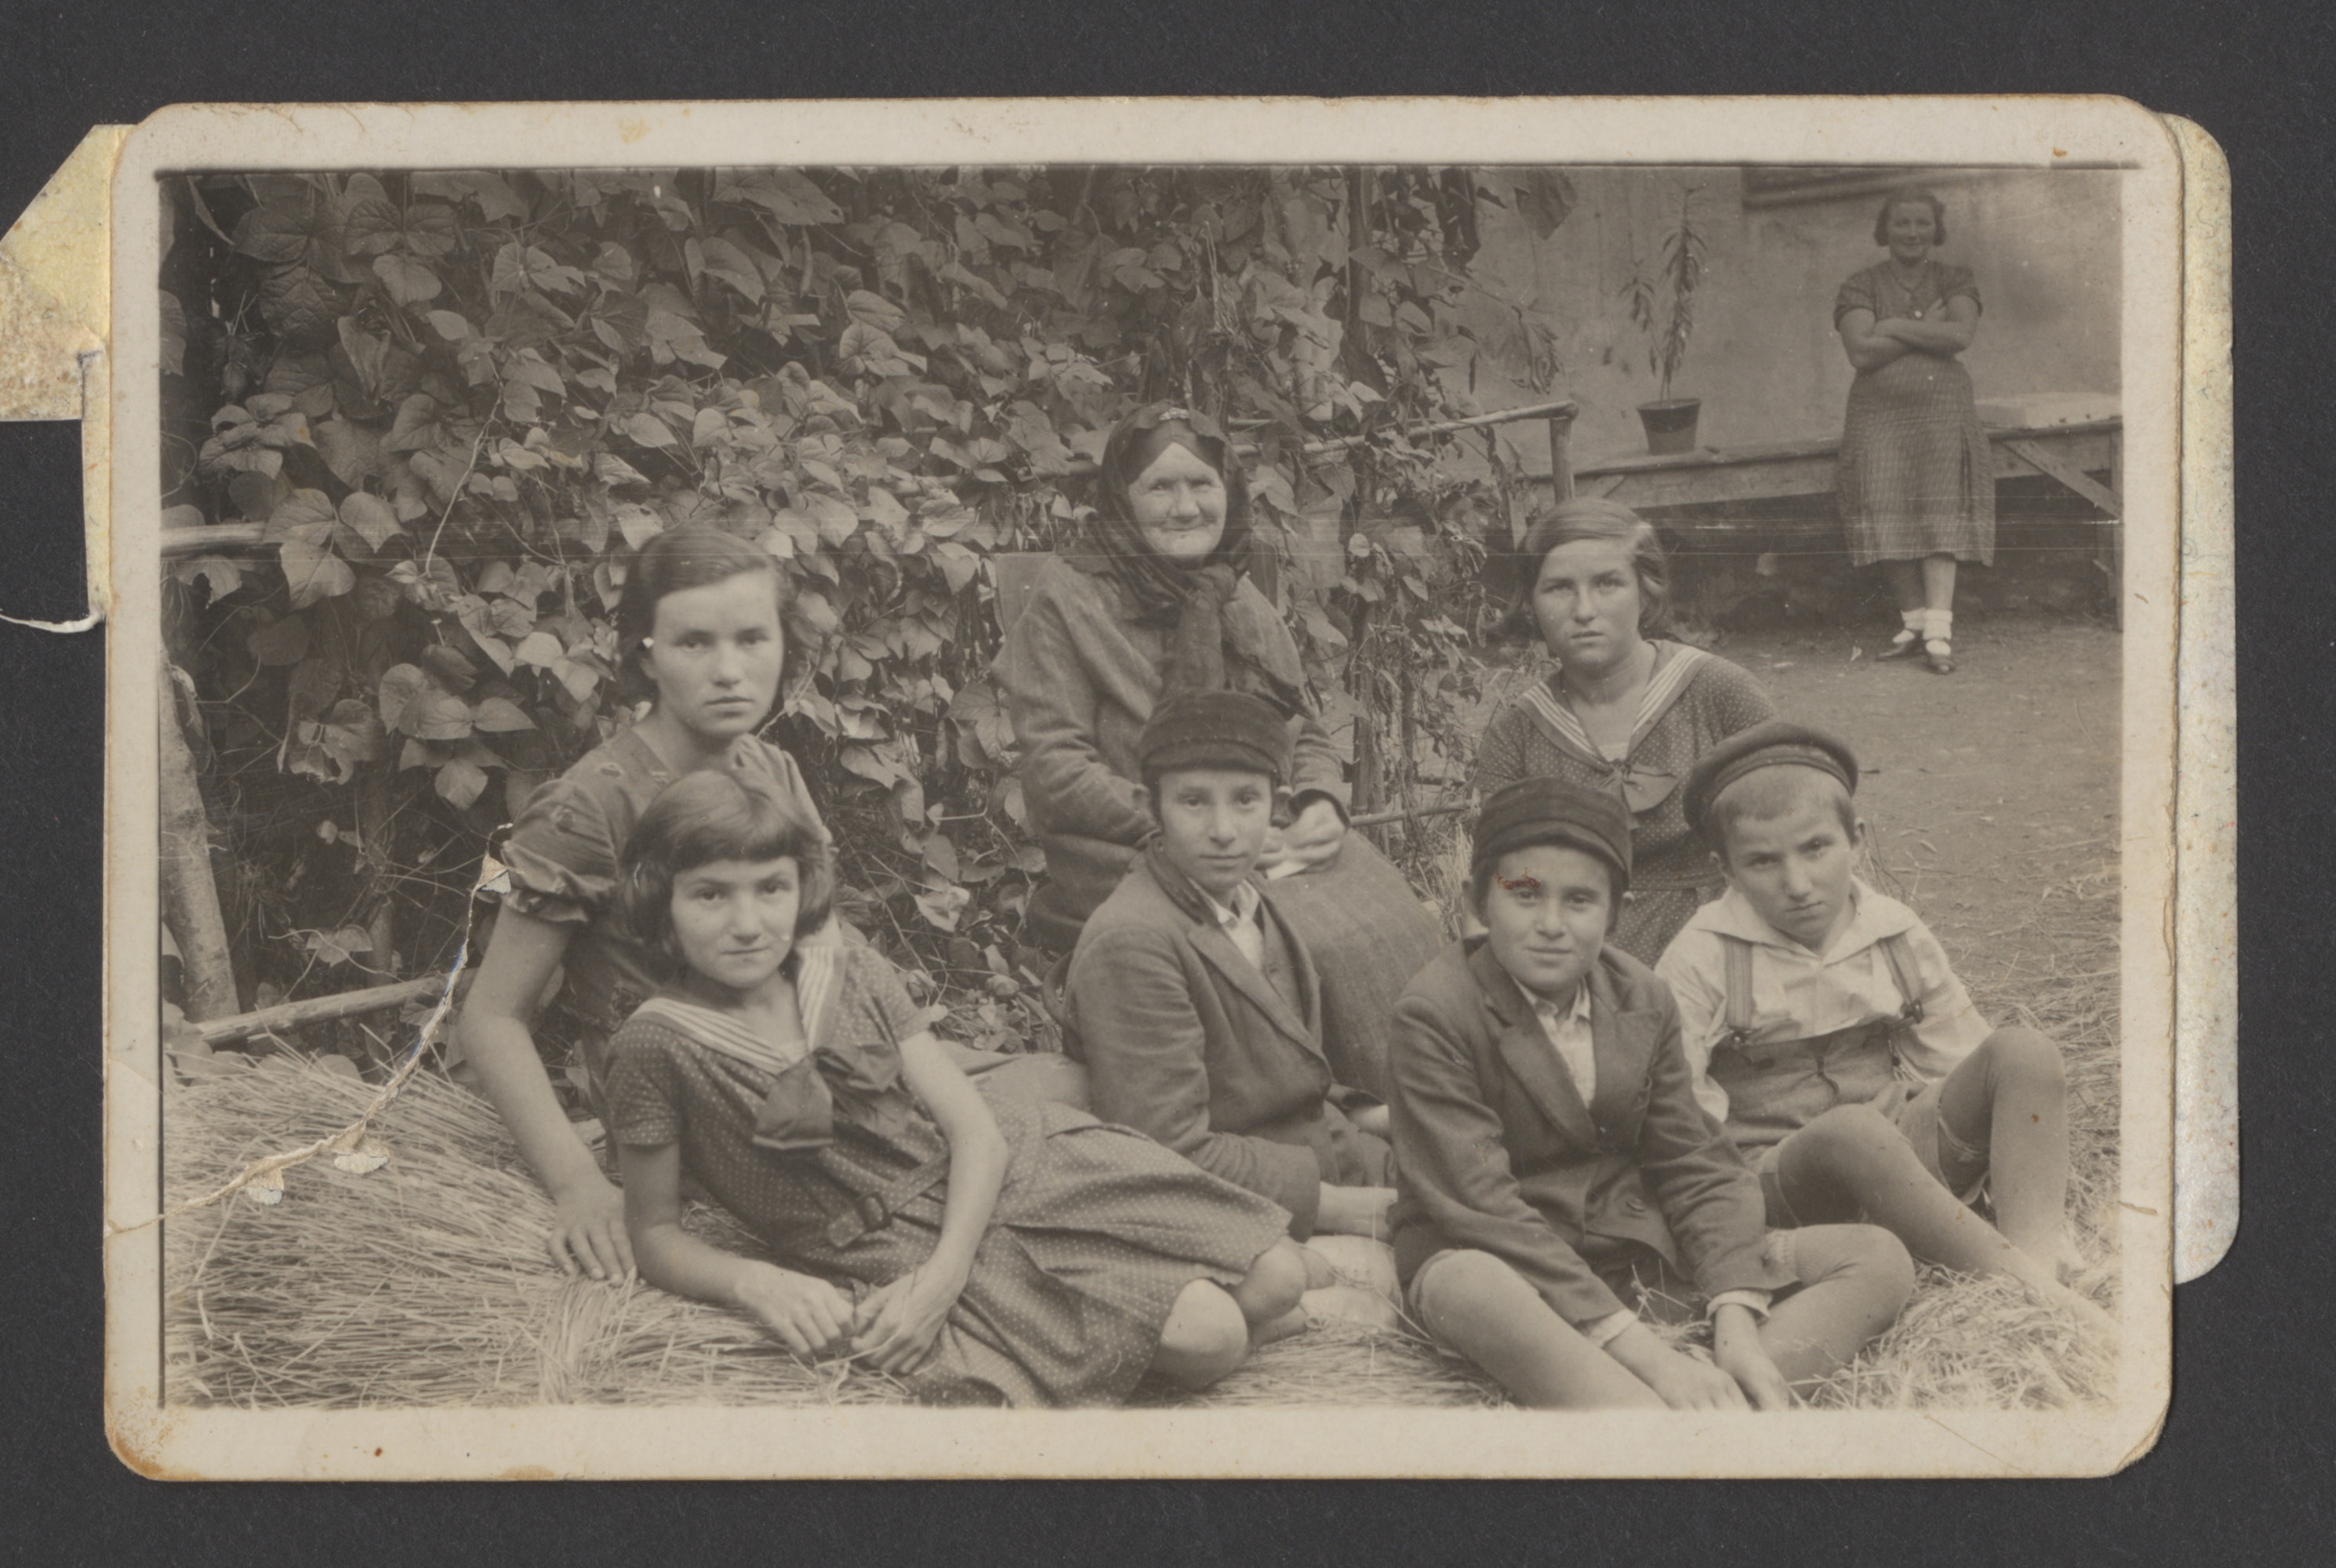 A Polish Jewish family gathers for a photograph in the backyard of their home in Nowy Sacz.  Pictured is Miriam Ullman (back, center) with her grandchildren:  siblings Blima (far left), Moishe (center), and Mayer Spiro (front, second from the right); and siblings Sally and Deborah (wearing sailor dresses), and Yoel Ullman (far right).